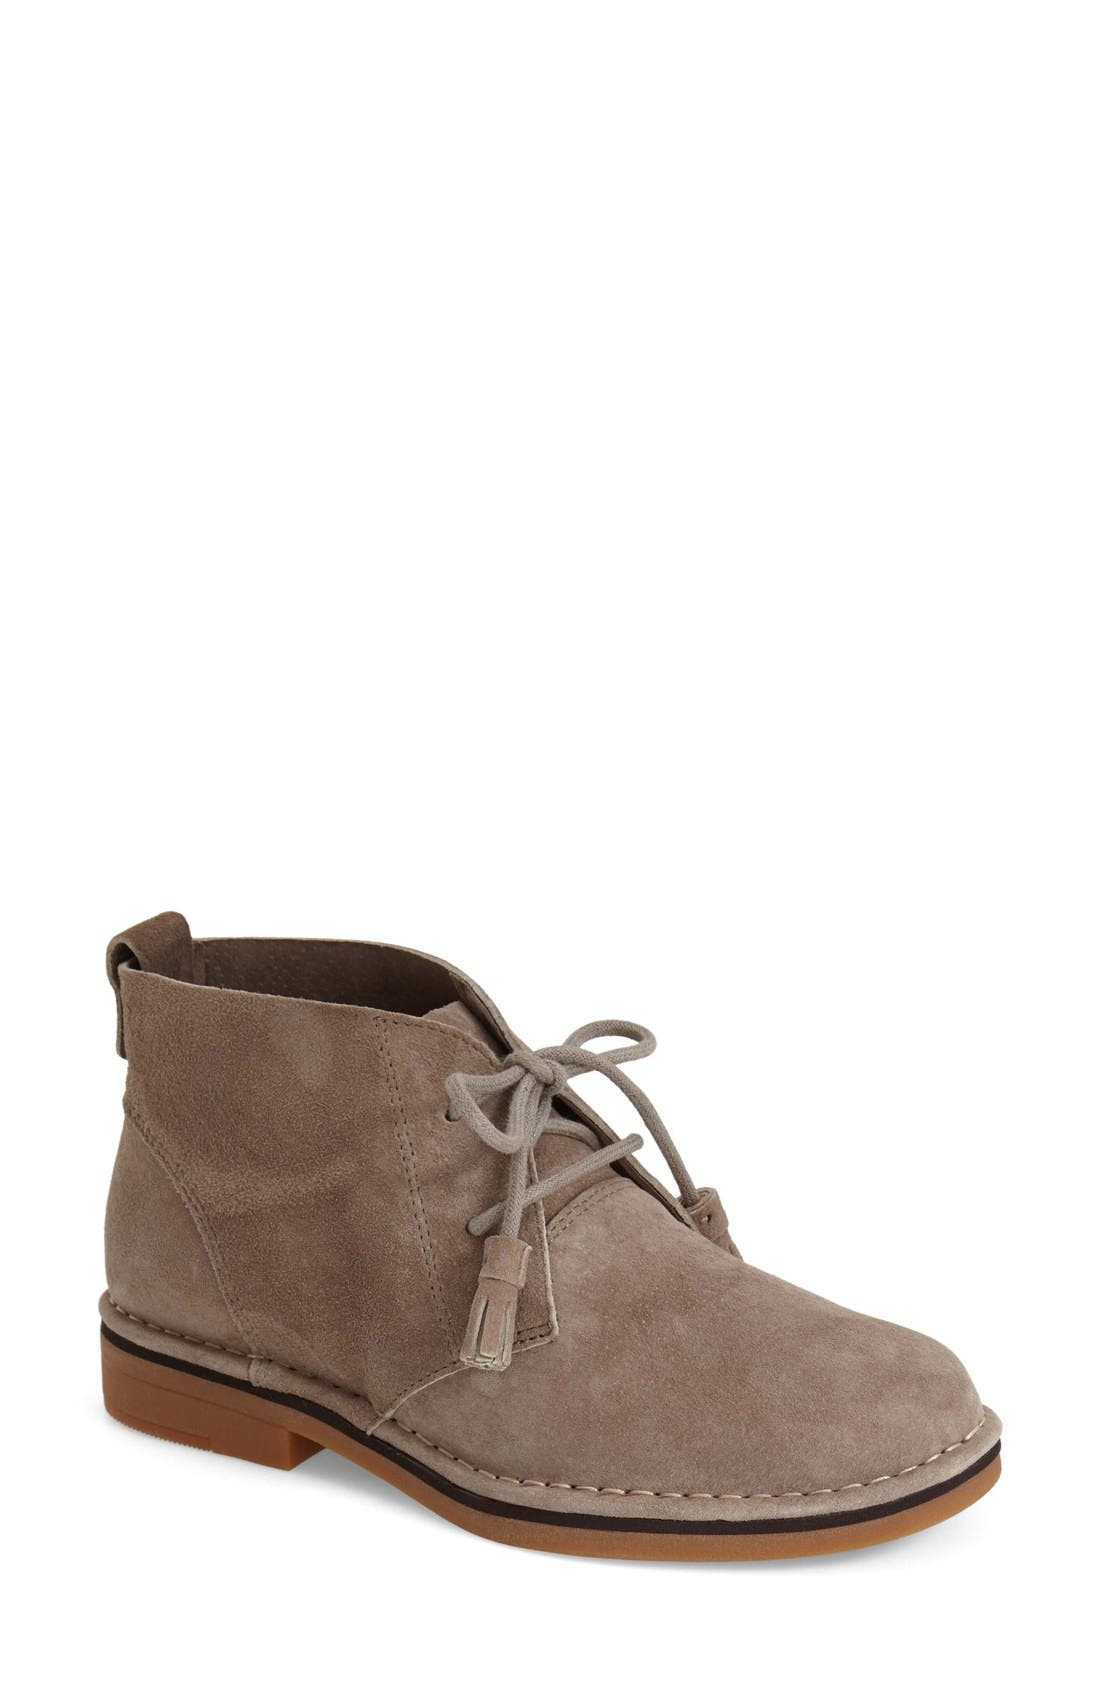 'Cyra Catelyn' Chukka Boot,                         Main,                         color, Taupe Suede